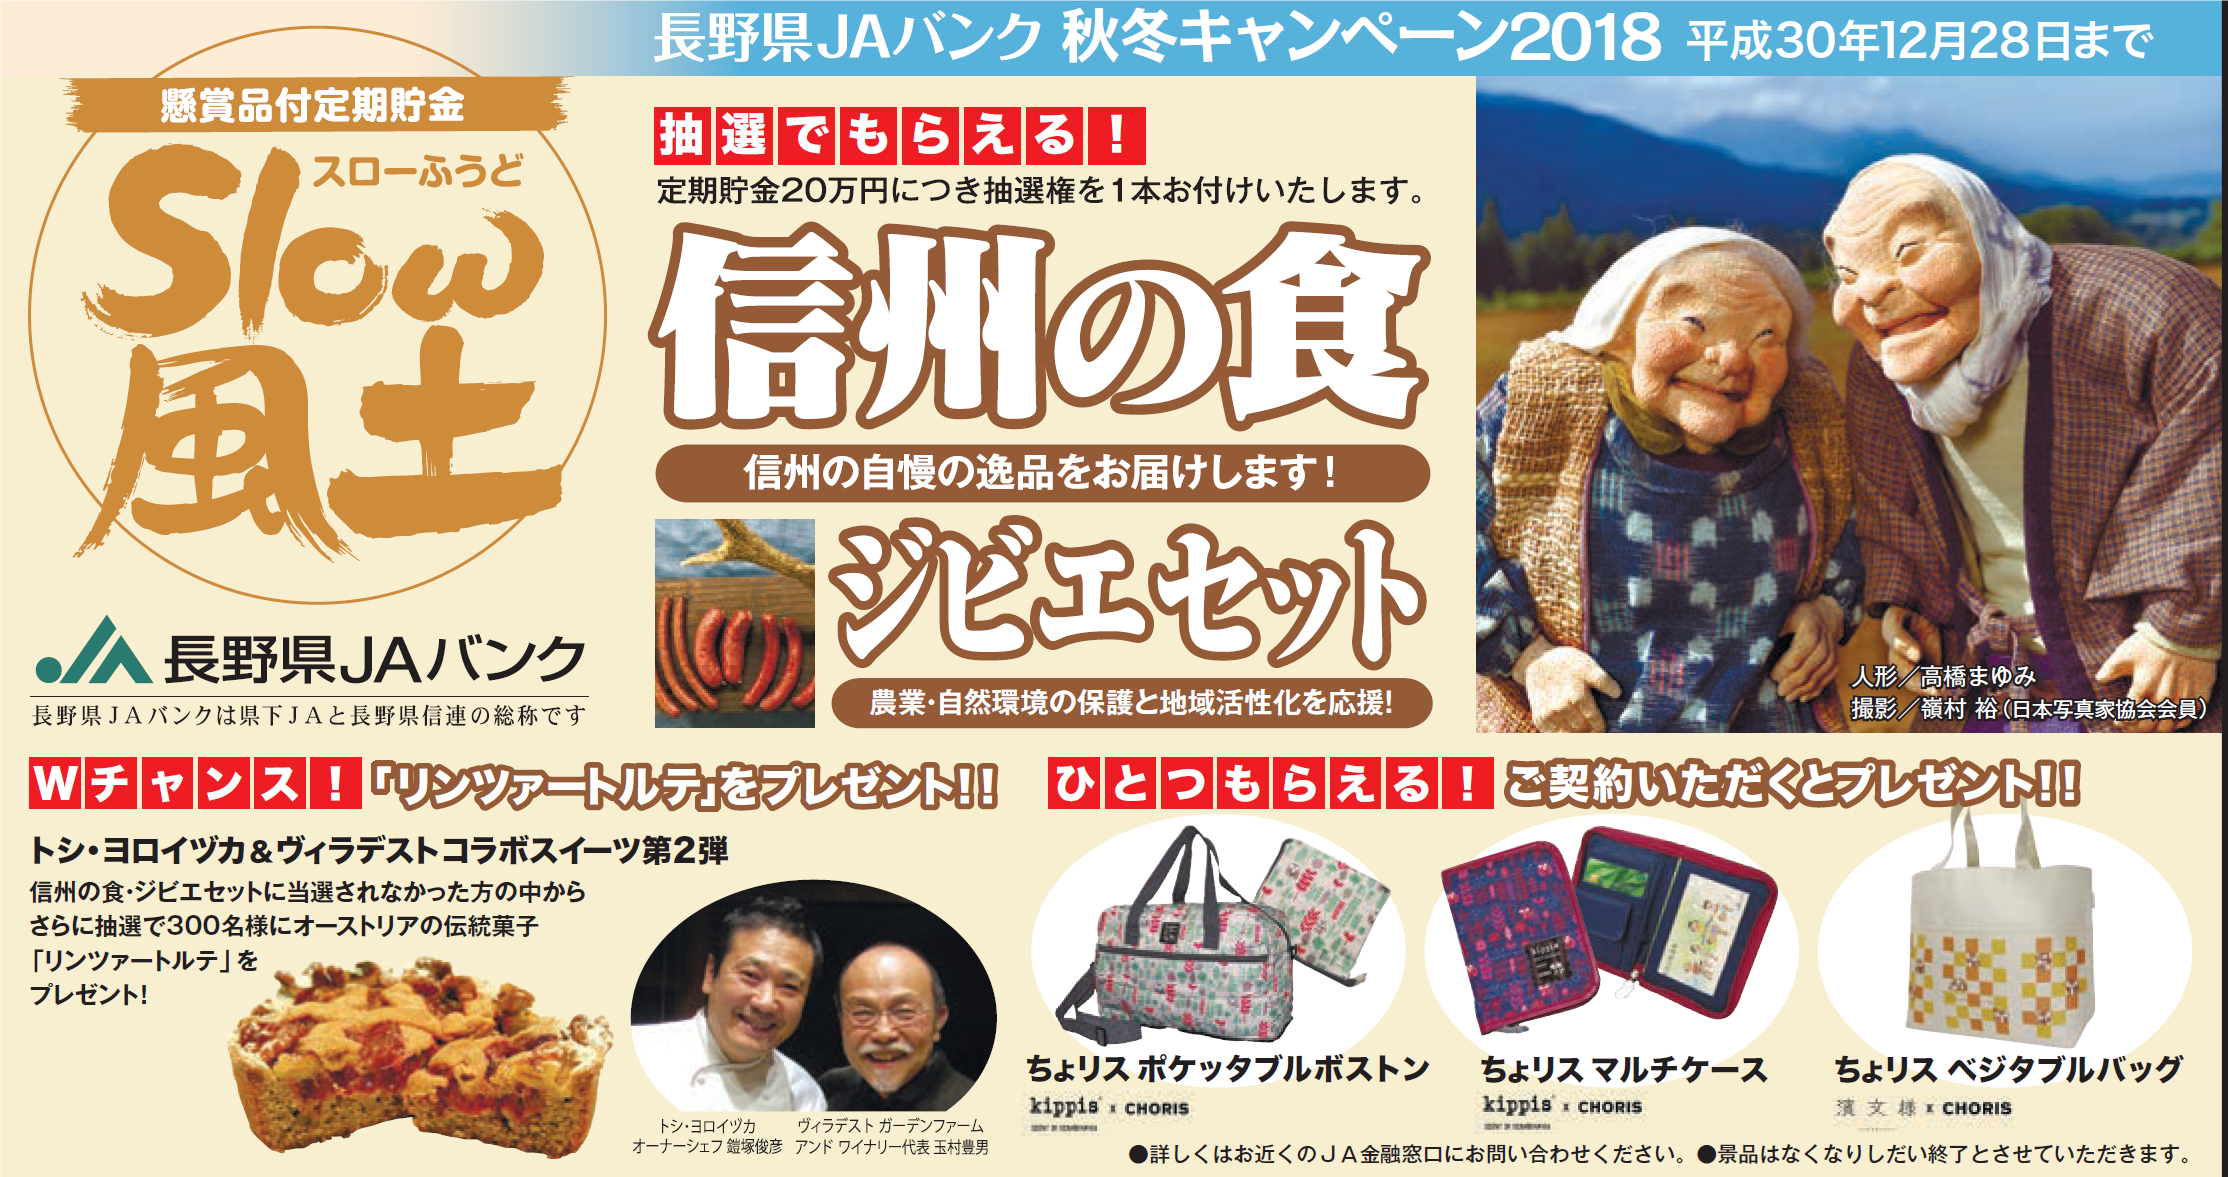 Slow風土2018当選HP.png